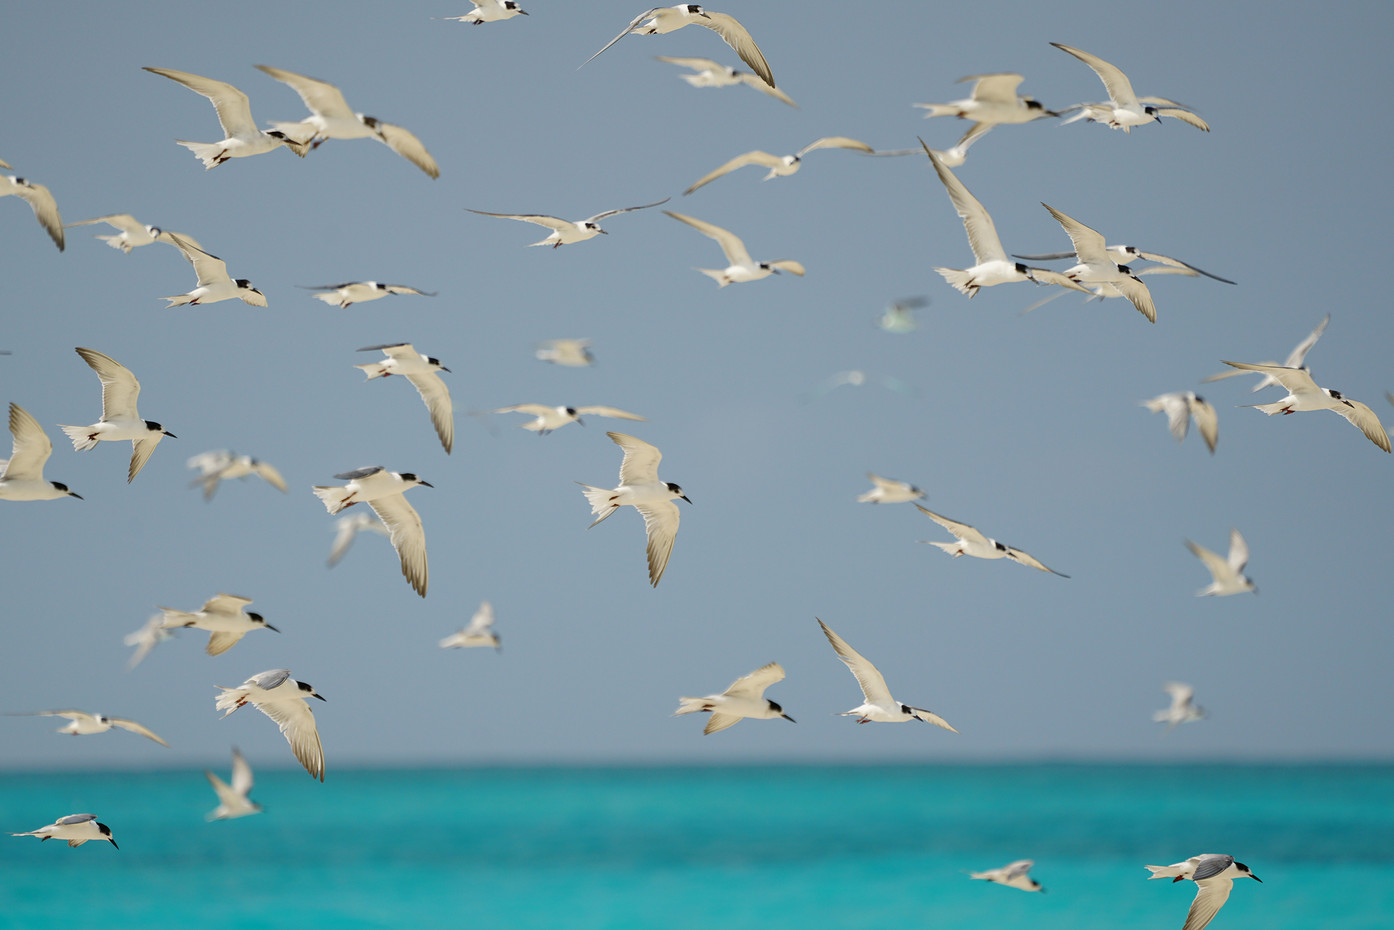 Common Terns on Mnemba Island, Tanzania